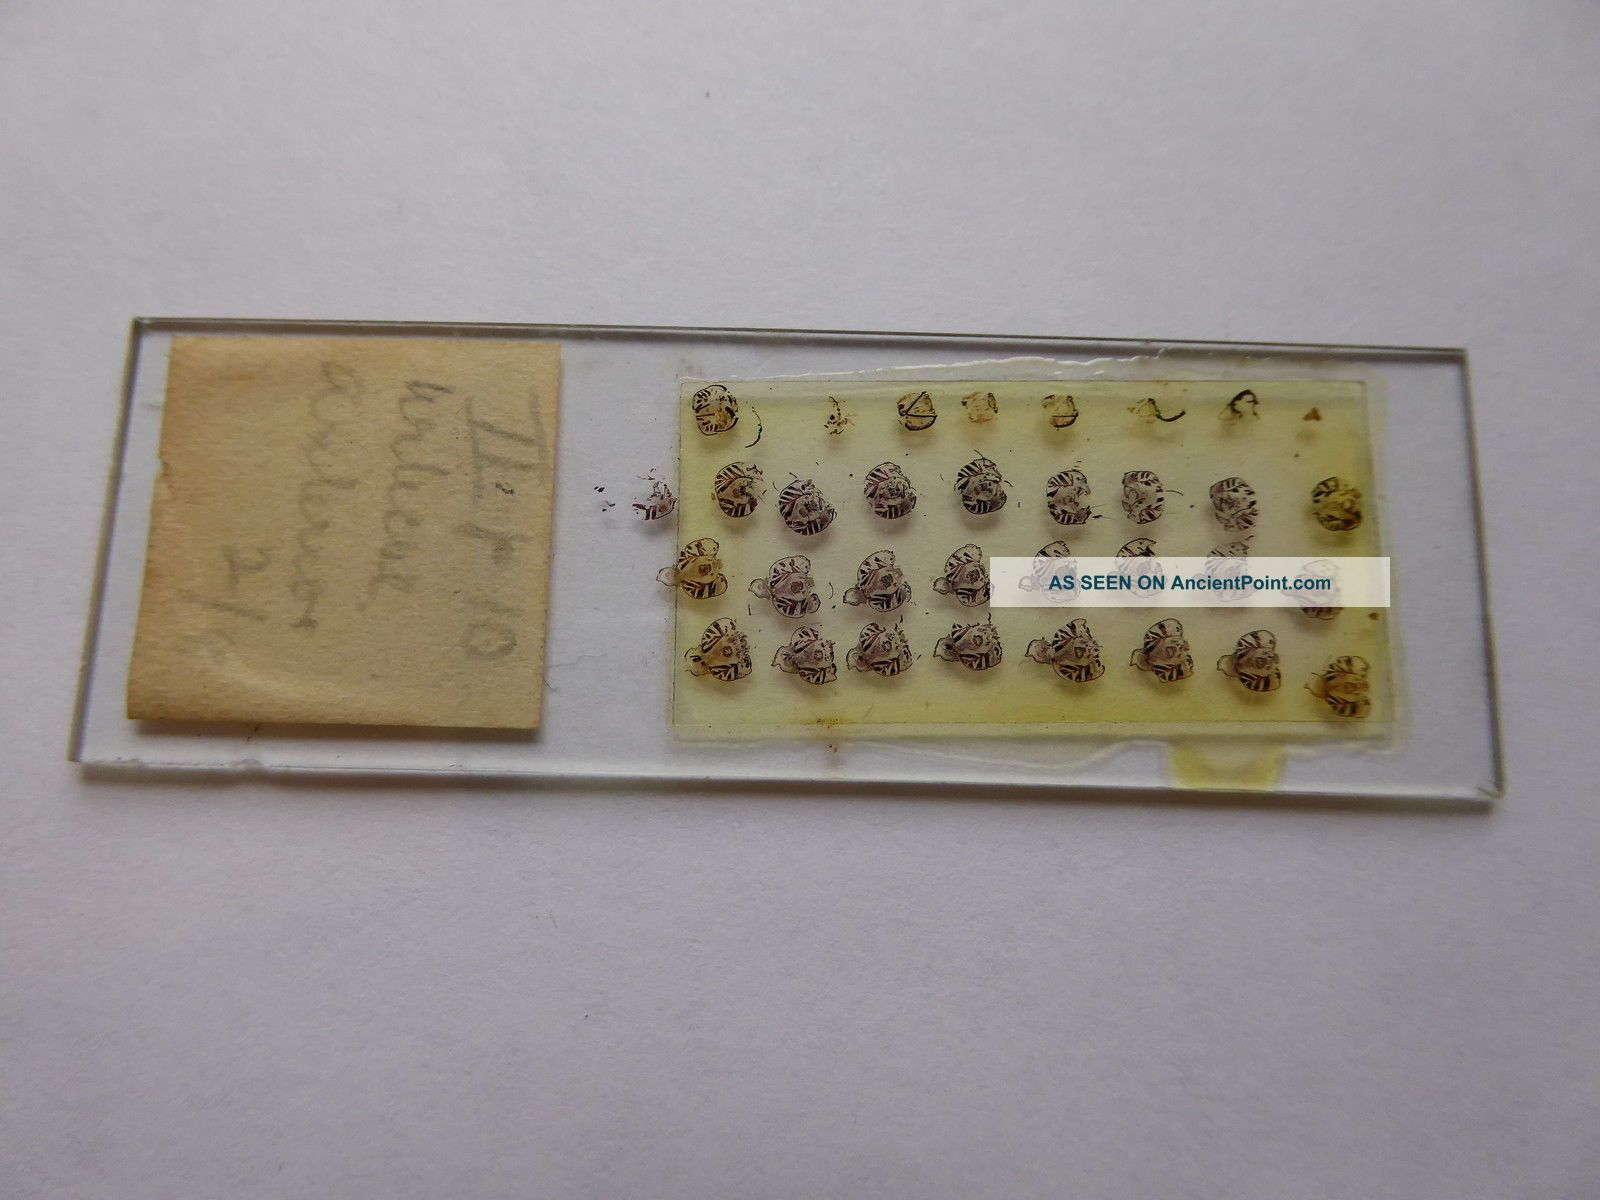 A Very Interesting Antique Glass Microscope Slide - Multiple Subject Other Antique Science Equip photo